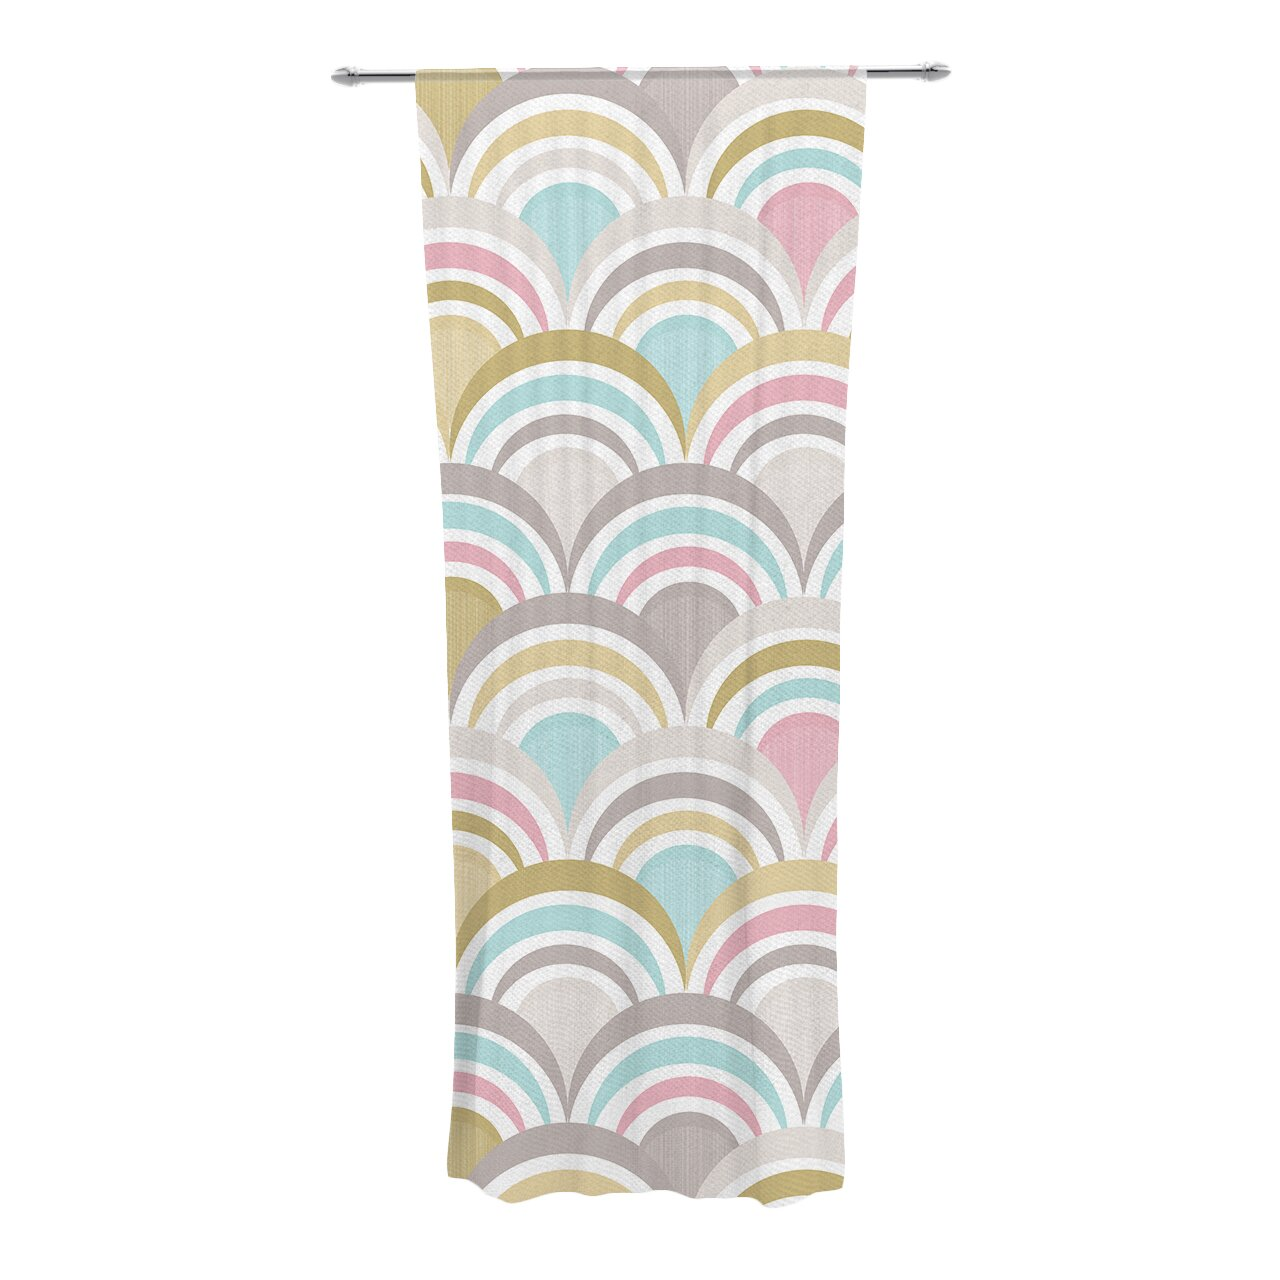 KESS InHouse Art Deco Delight Curtain Panels